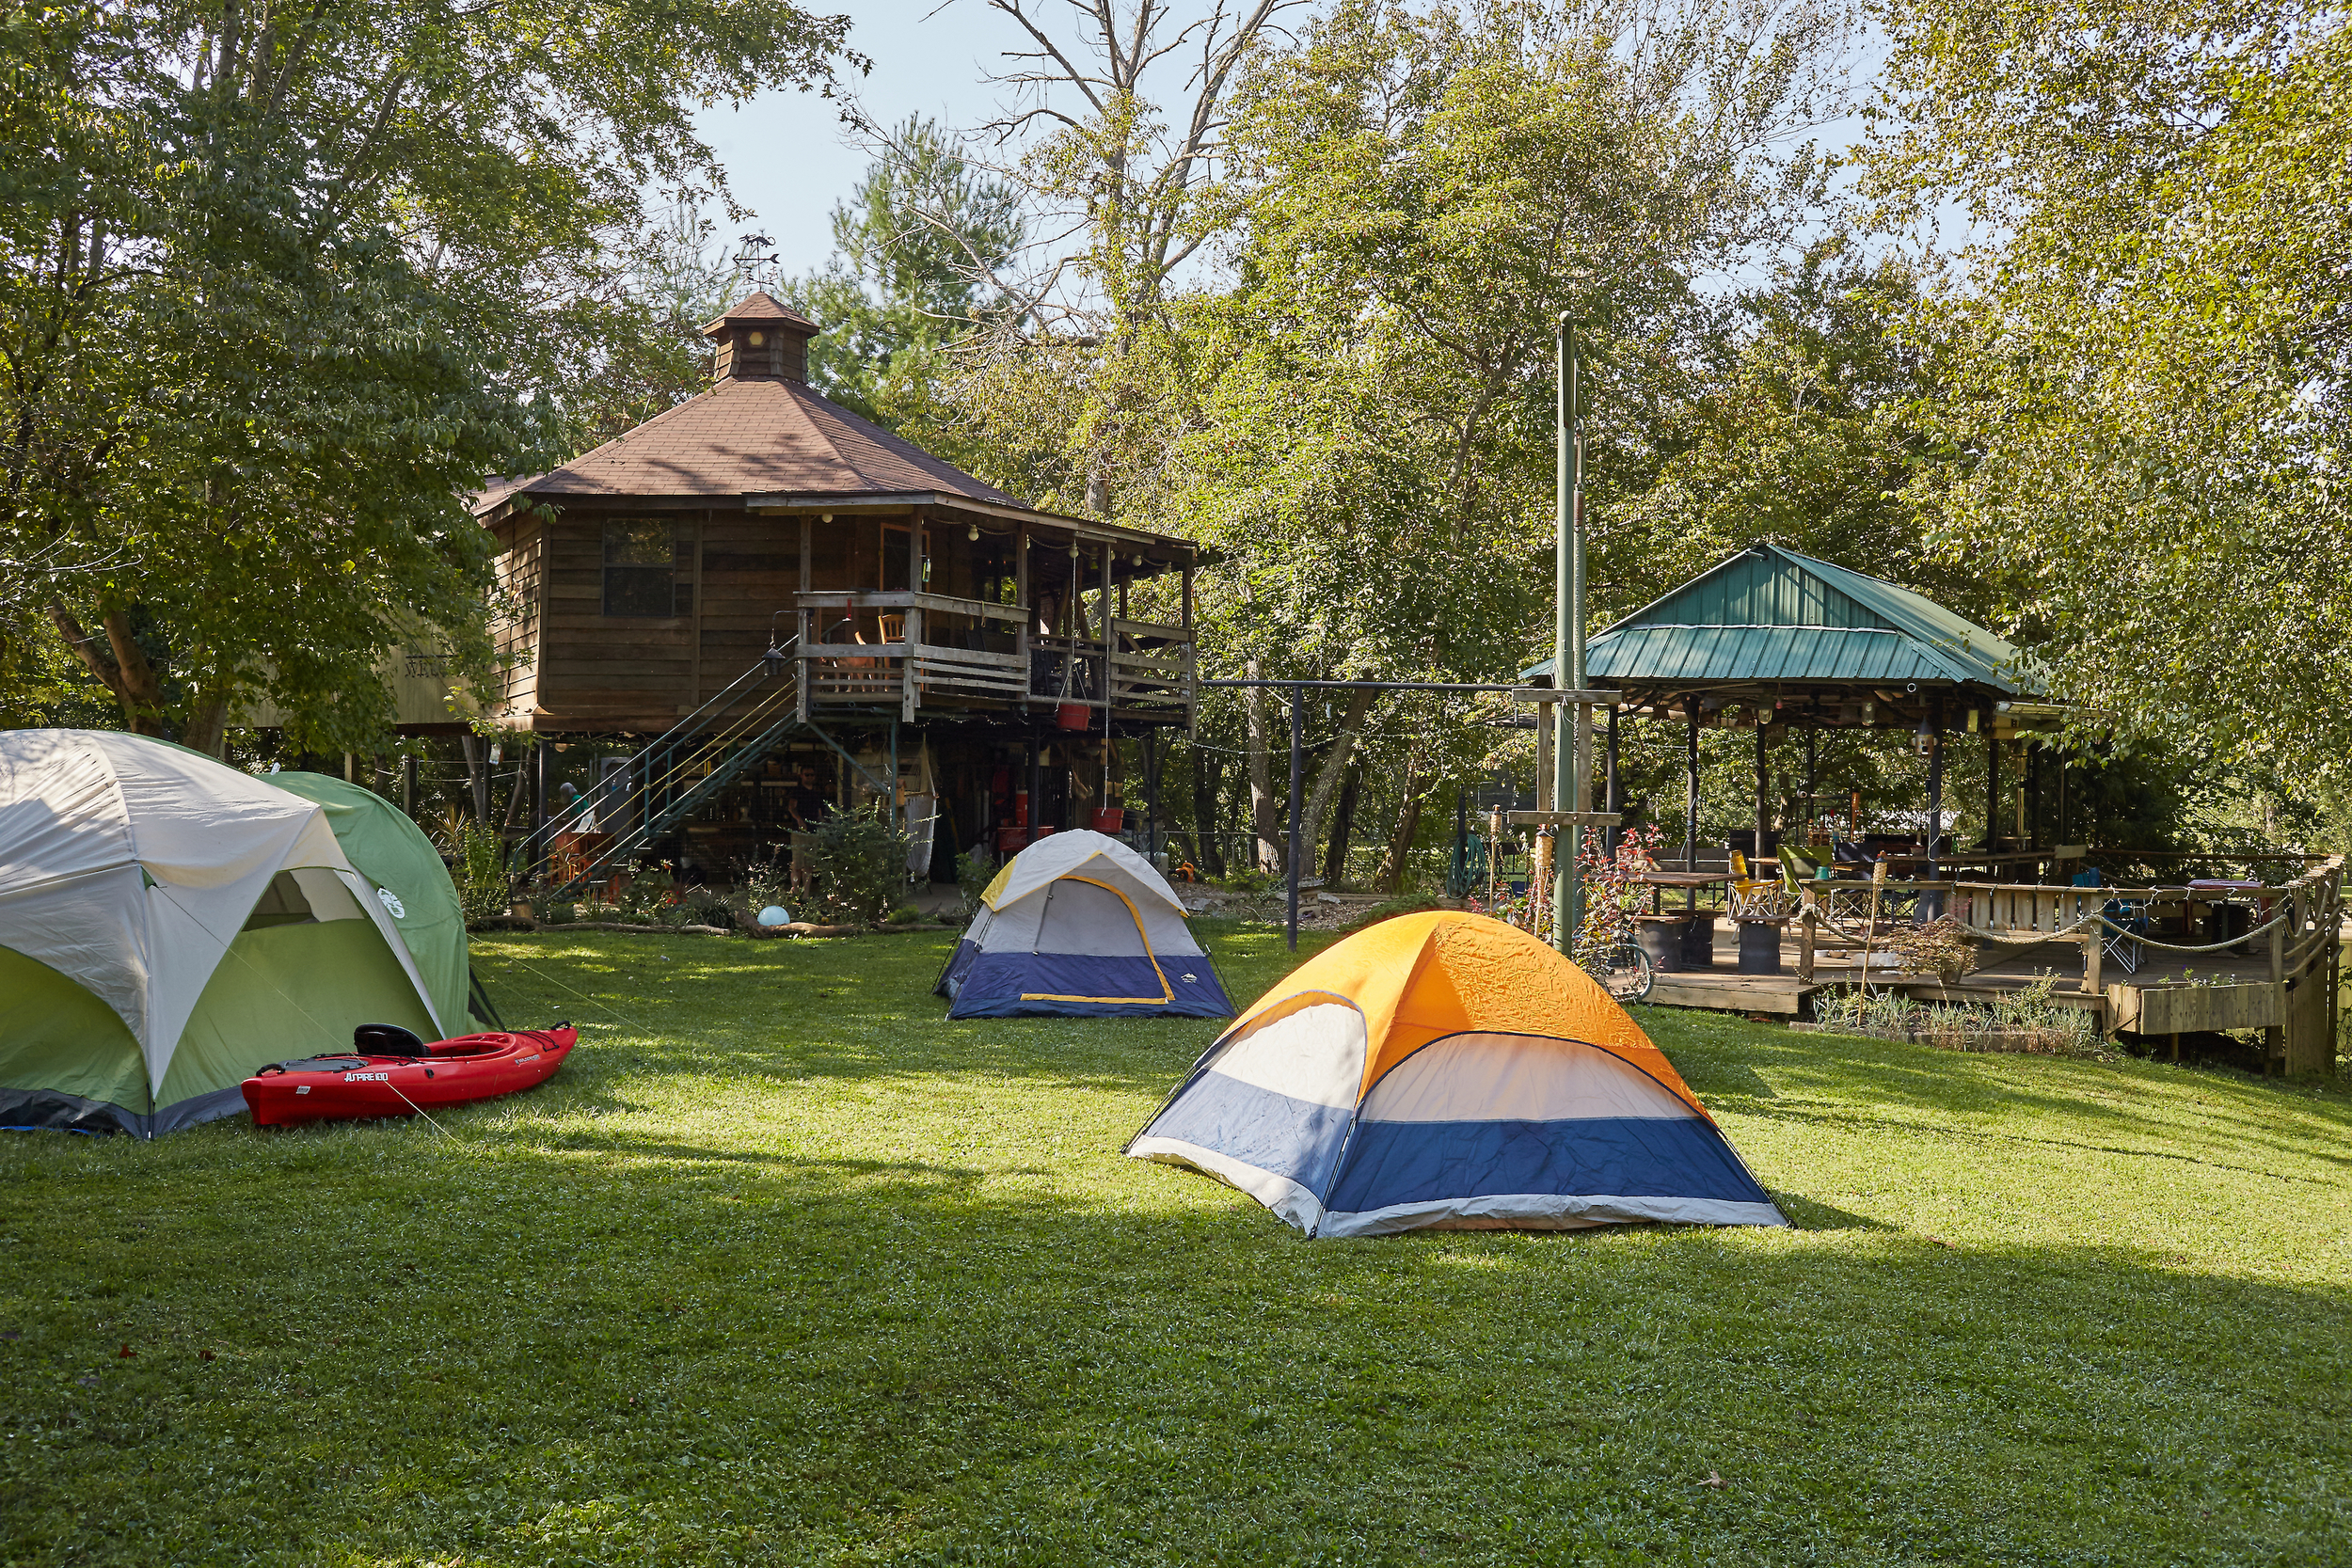 Tent Camping and Cabin Rental available next to a Shared Pavilion.